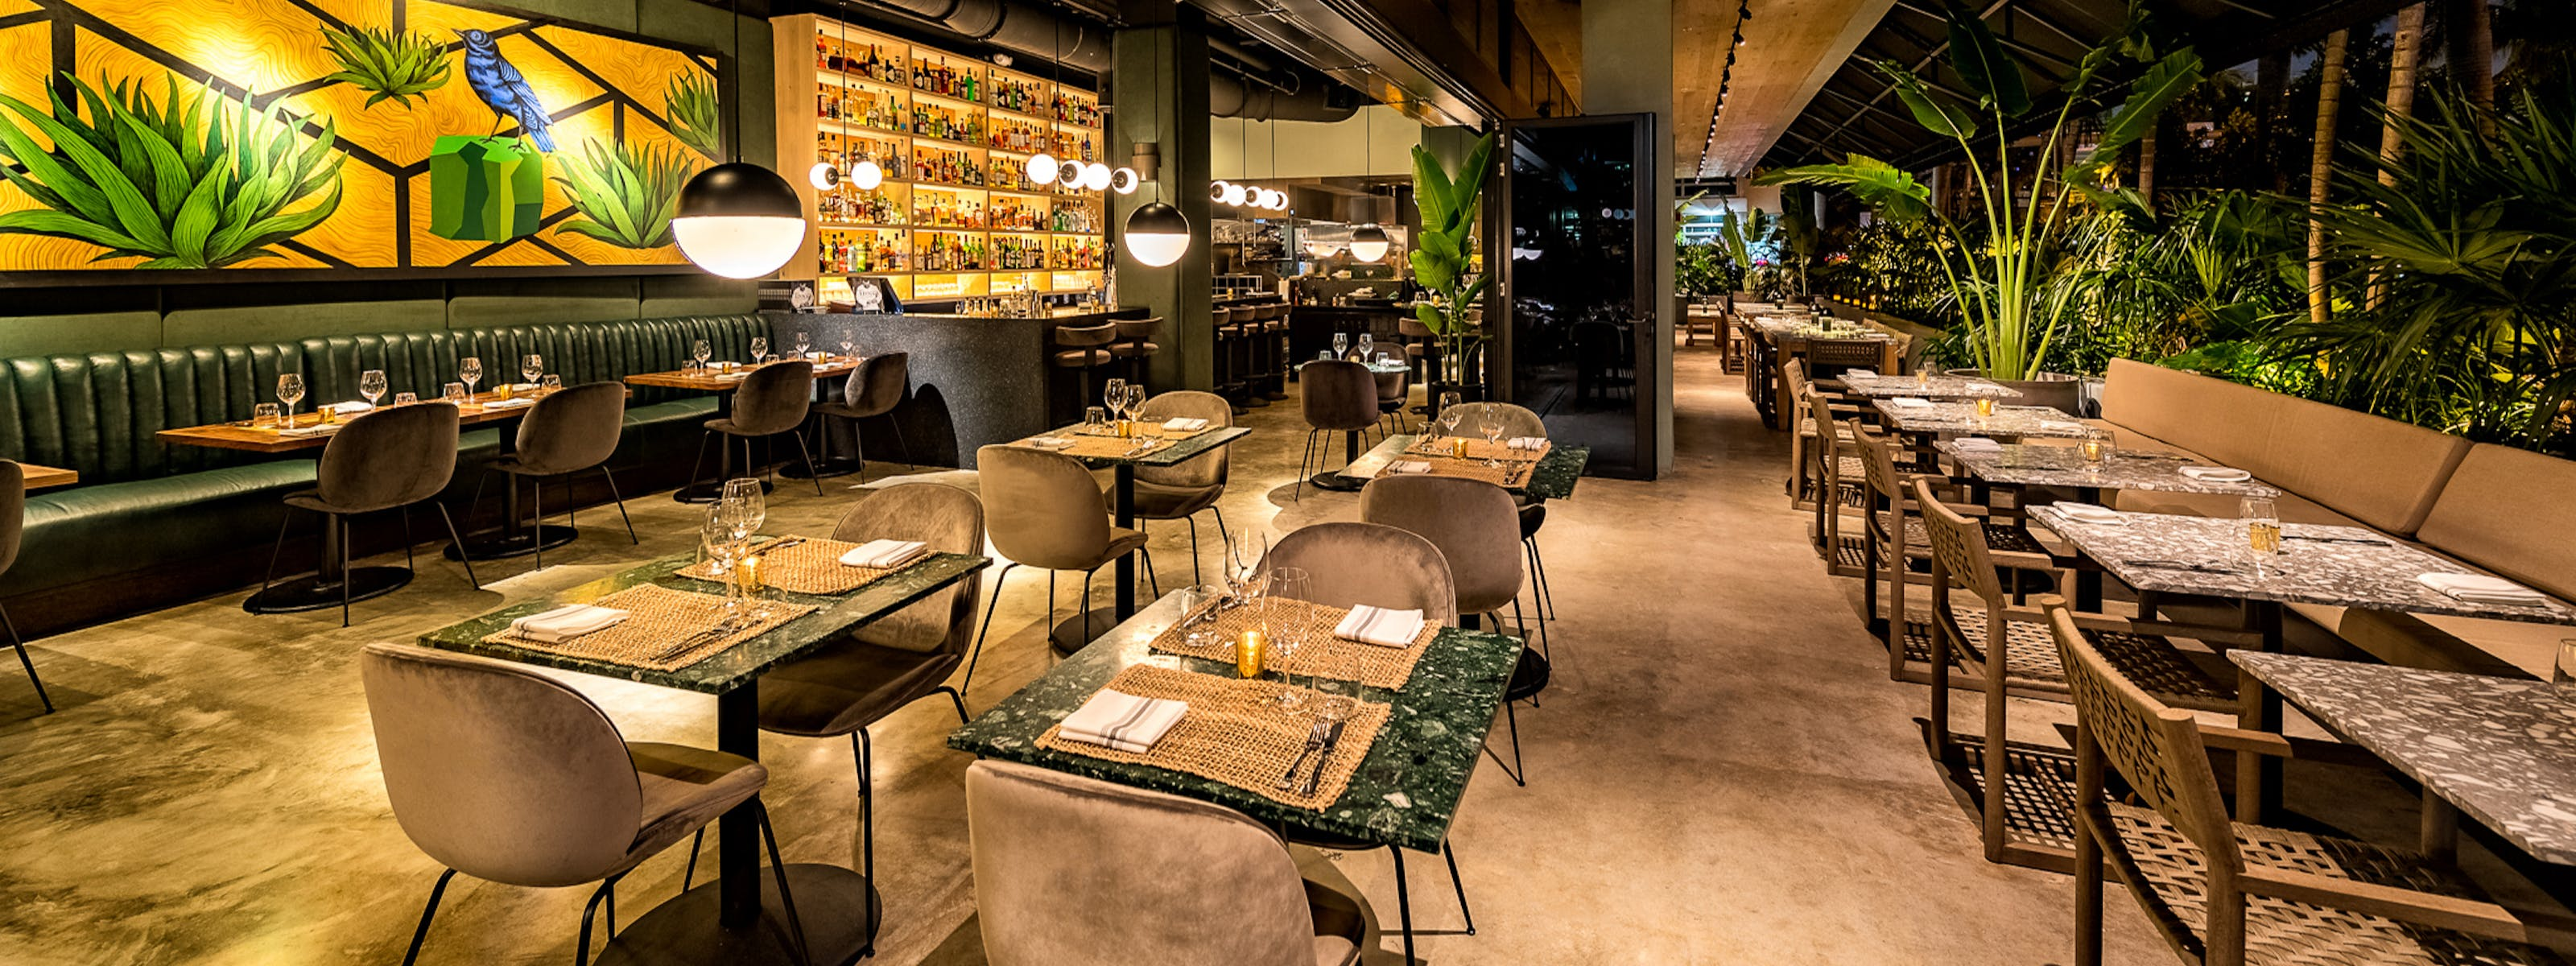 The Best Restaurants In South Beach - South Beach - Miami - The Infatuation